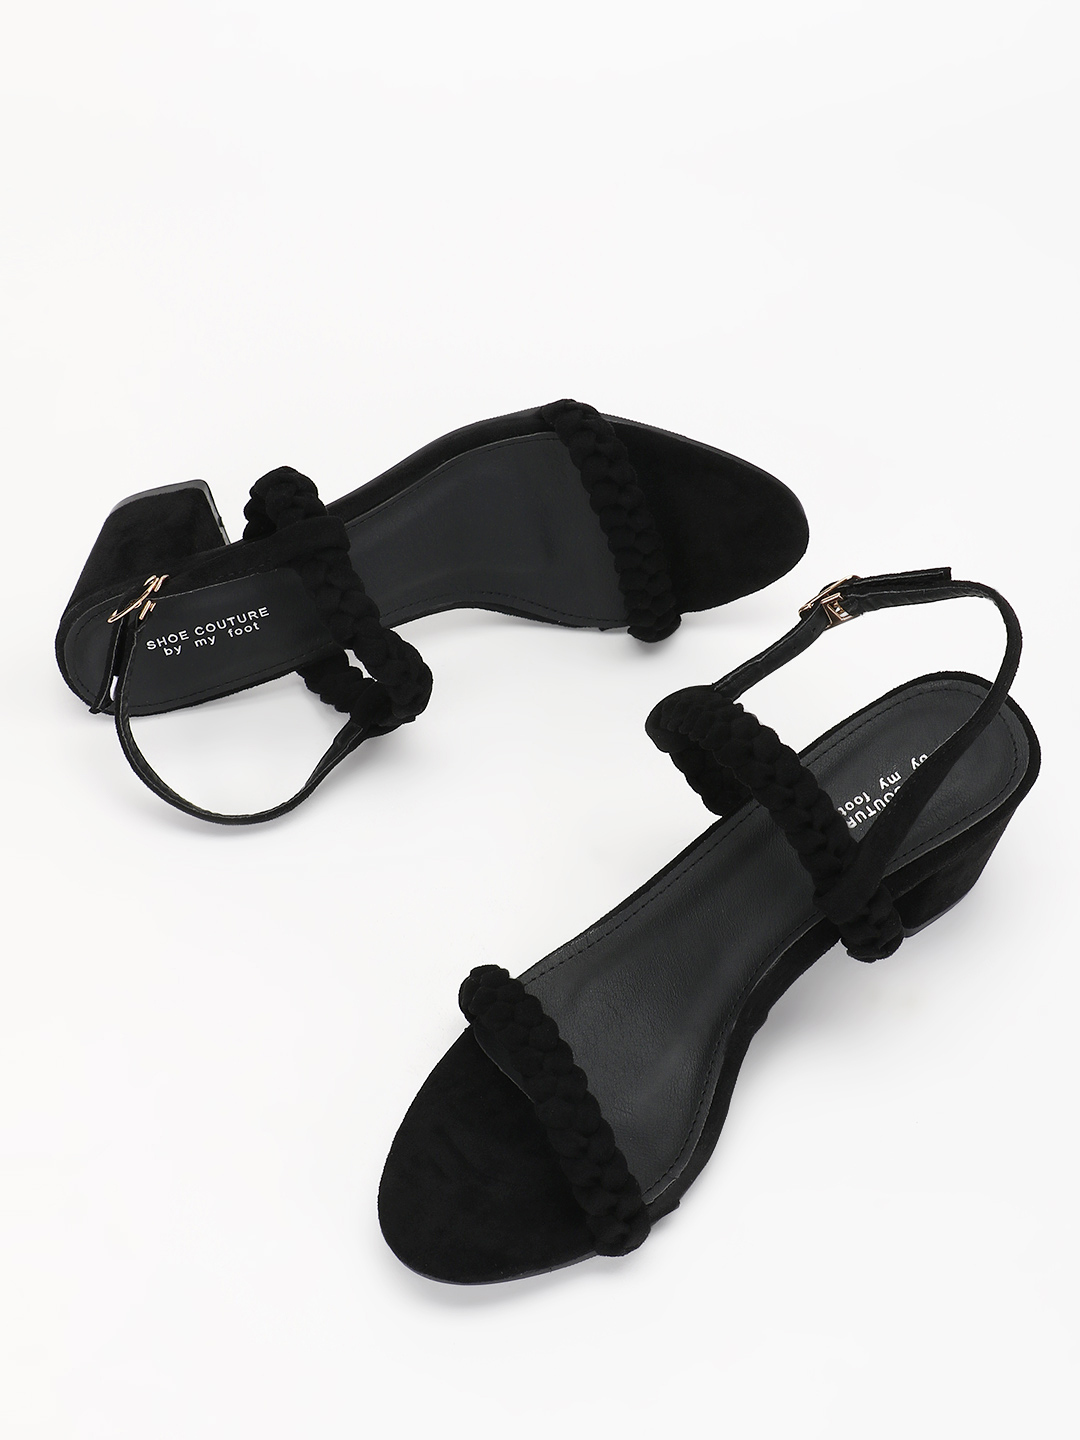 My Foot Couture Black Braided Strap Block Heeled Sandals 1